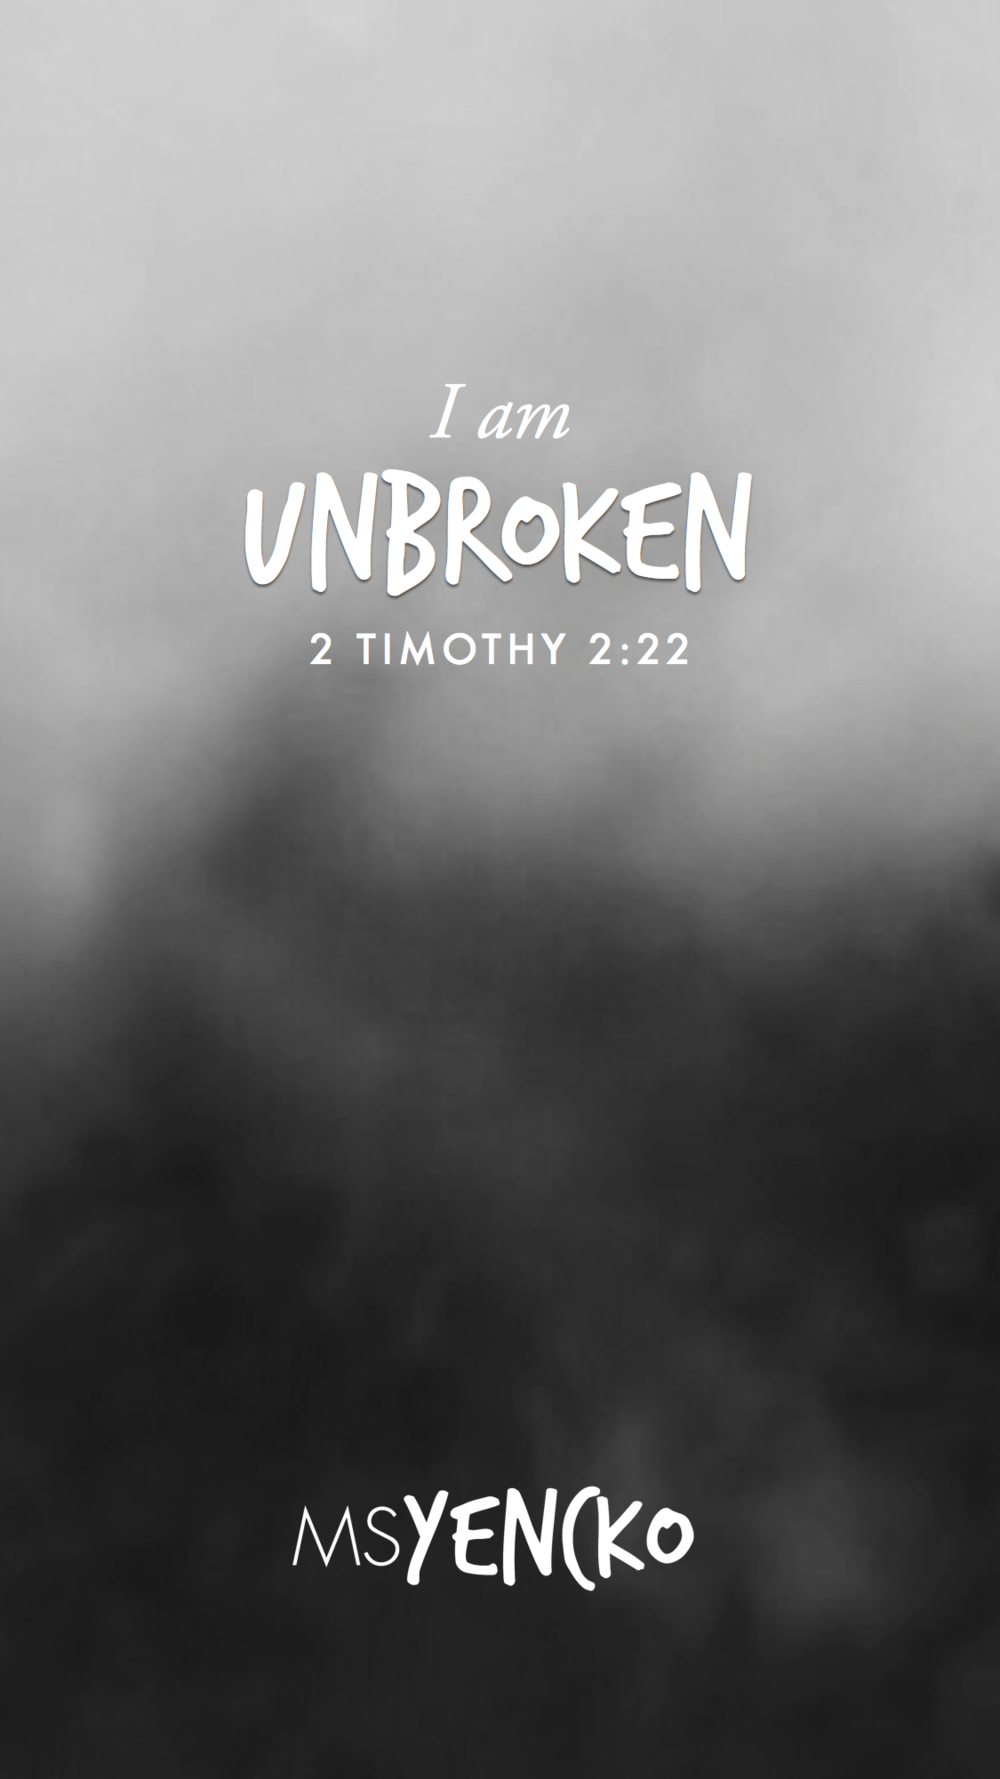 Iphone 6 - Unbroken.png